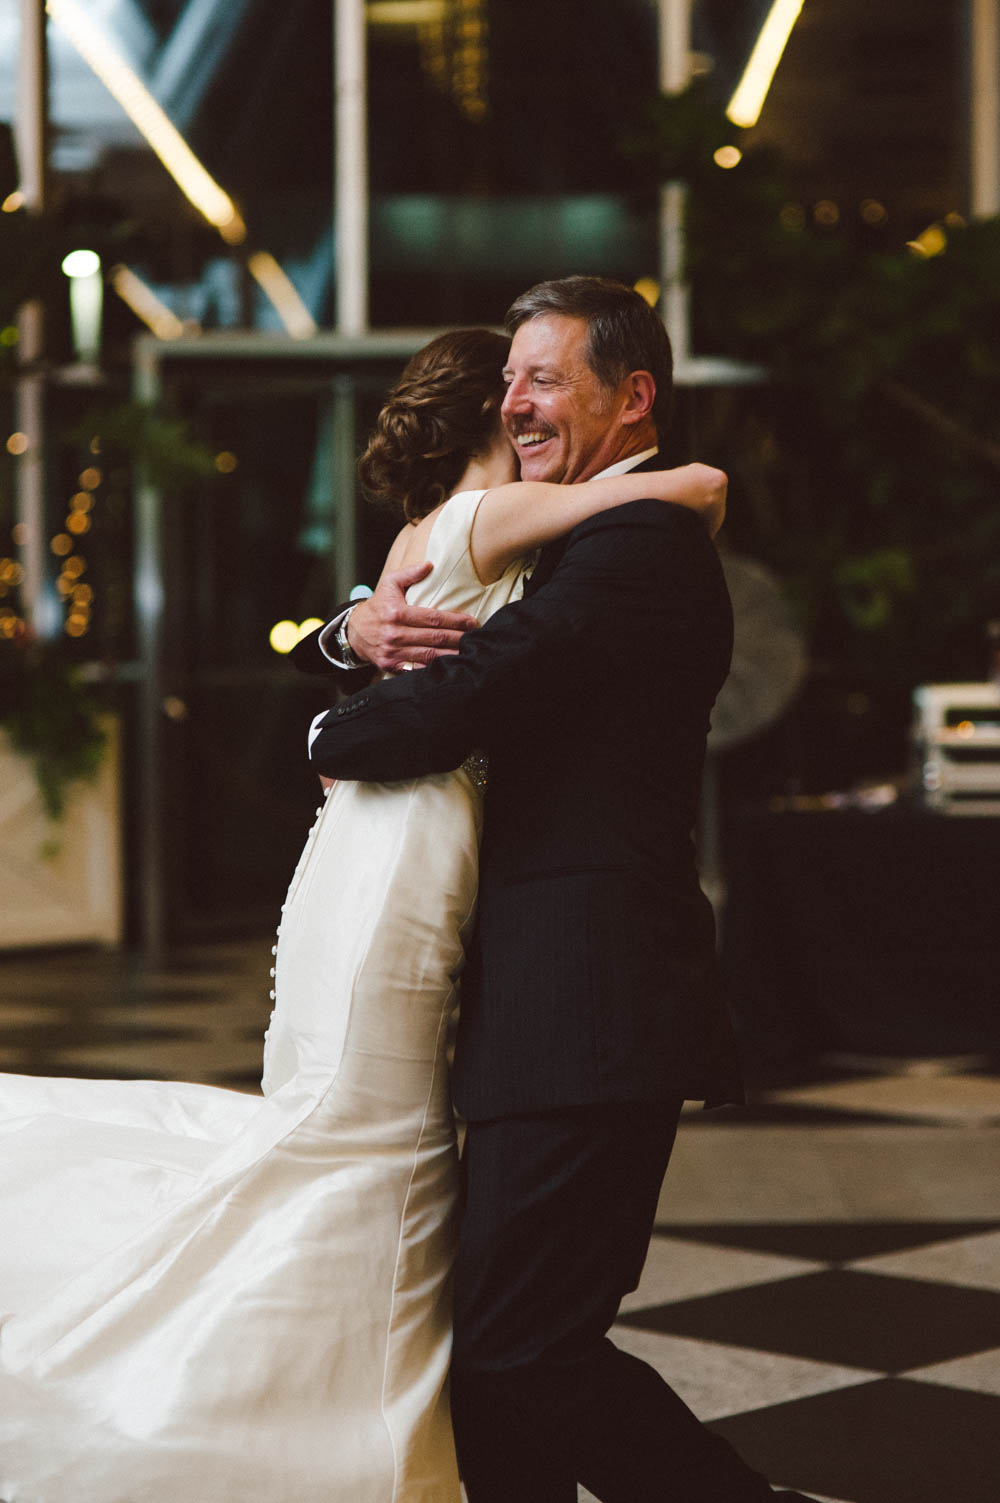 wintergarden-wedding-pittsburgh-139.jpg